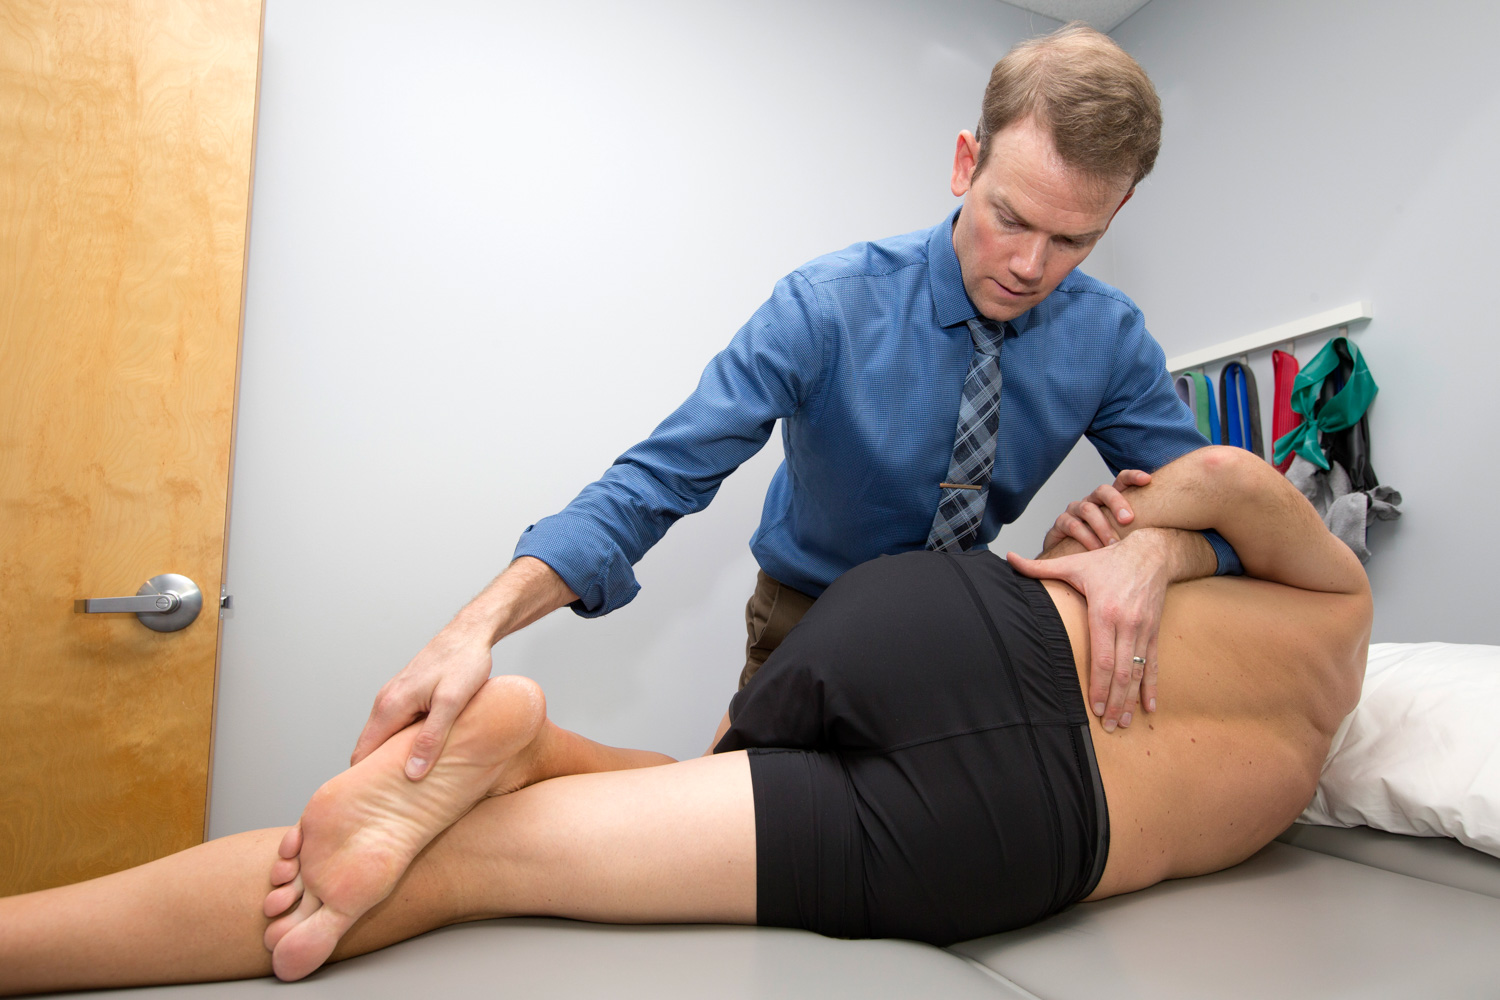 boulder-low-back-pain-treatment-manipulation